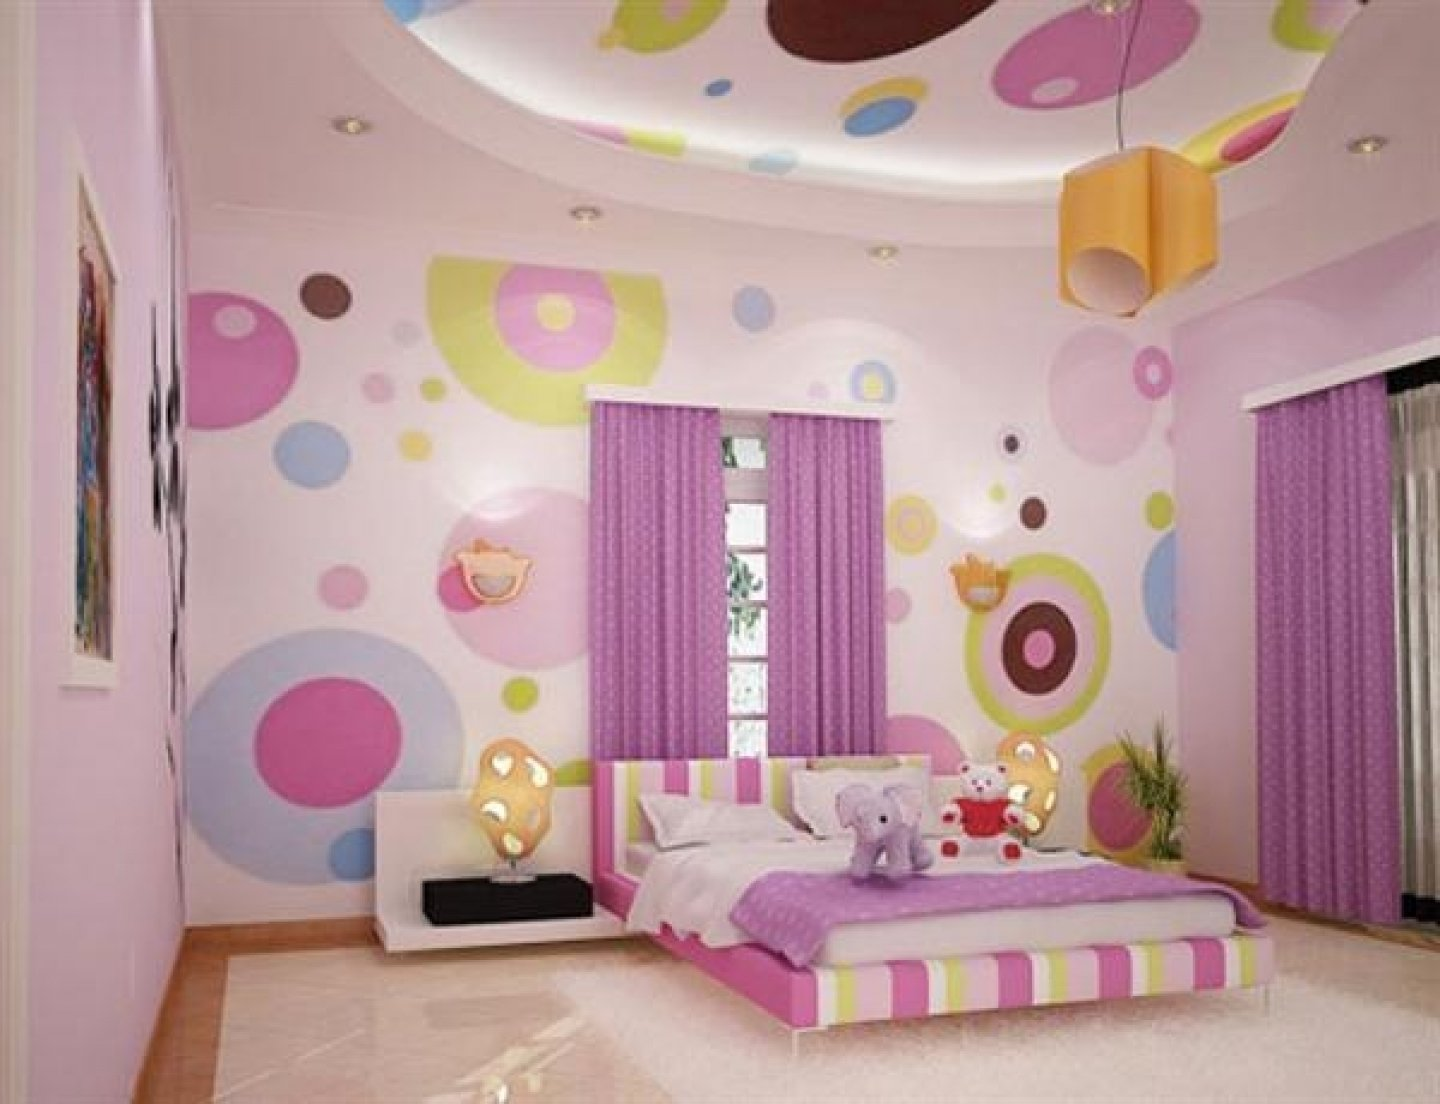 10 Lovable Paint Ideas For Girls Bedroom cool colorful square pattern wall colors theme girls bedroom 1